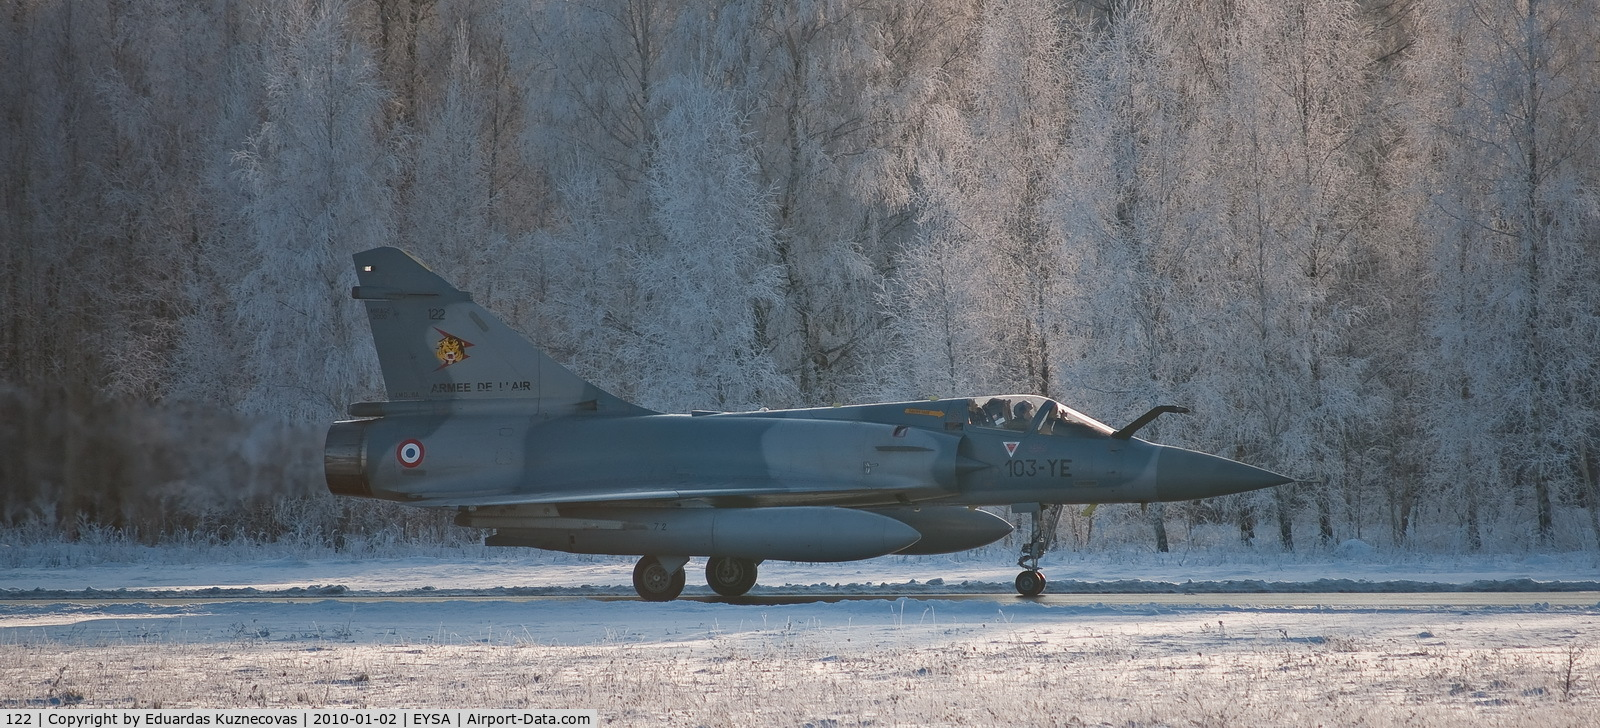 122, Dassault Mirage 2000C C/N 405, Taxi for parking